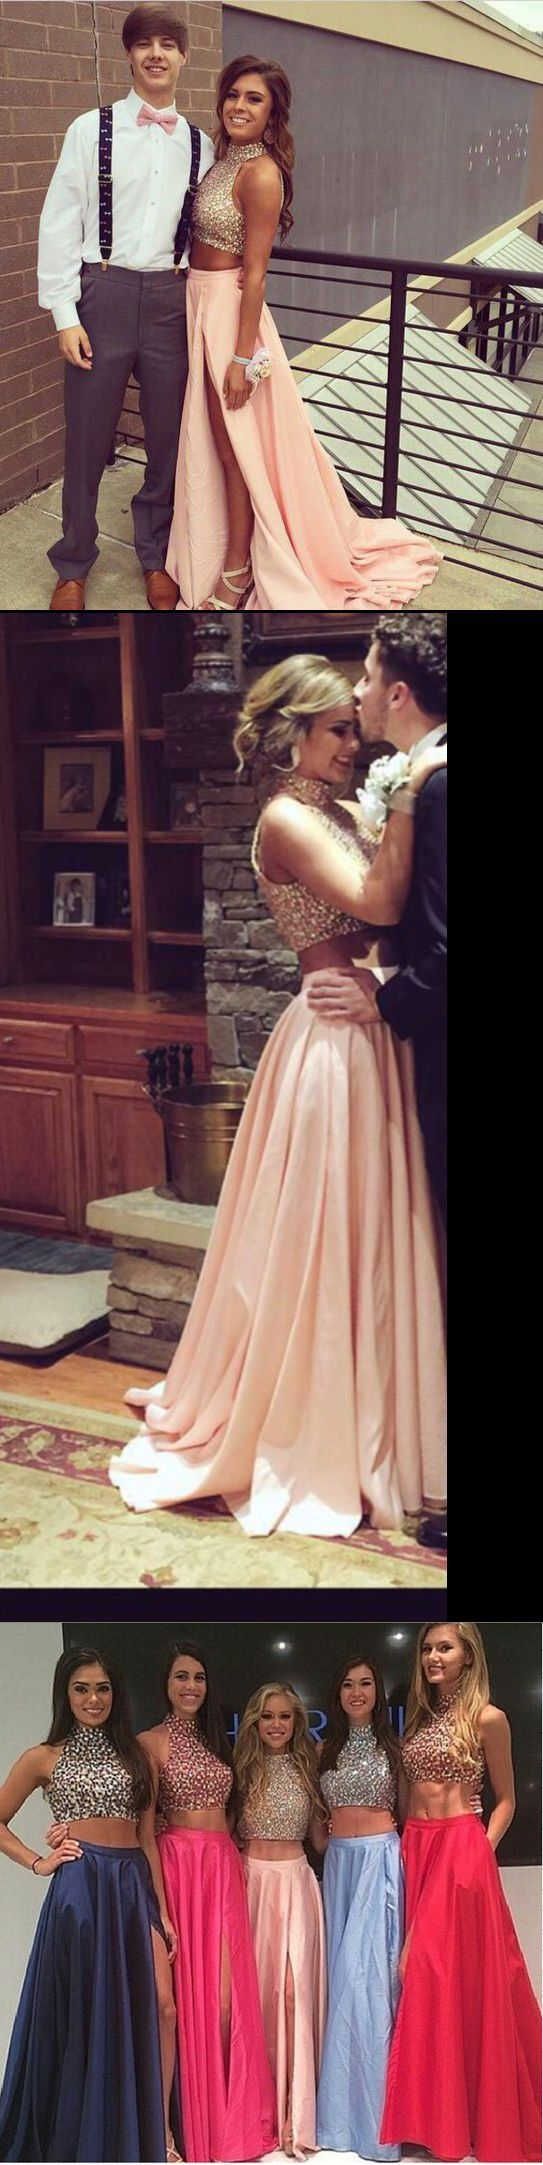 2 Piece Prom Gown,Two Piece Prom Dresses,Evening Gowns,2 Pieces Party Dresses,Sexy Evening Gowns,Sparkle Pearl Pink Formal Dress For Teens